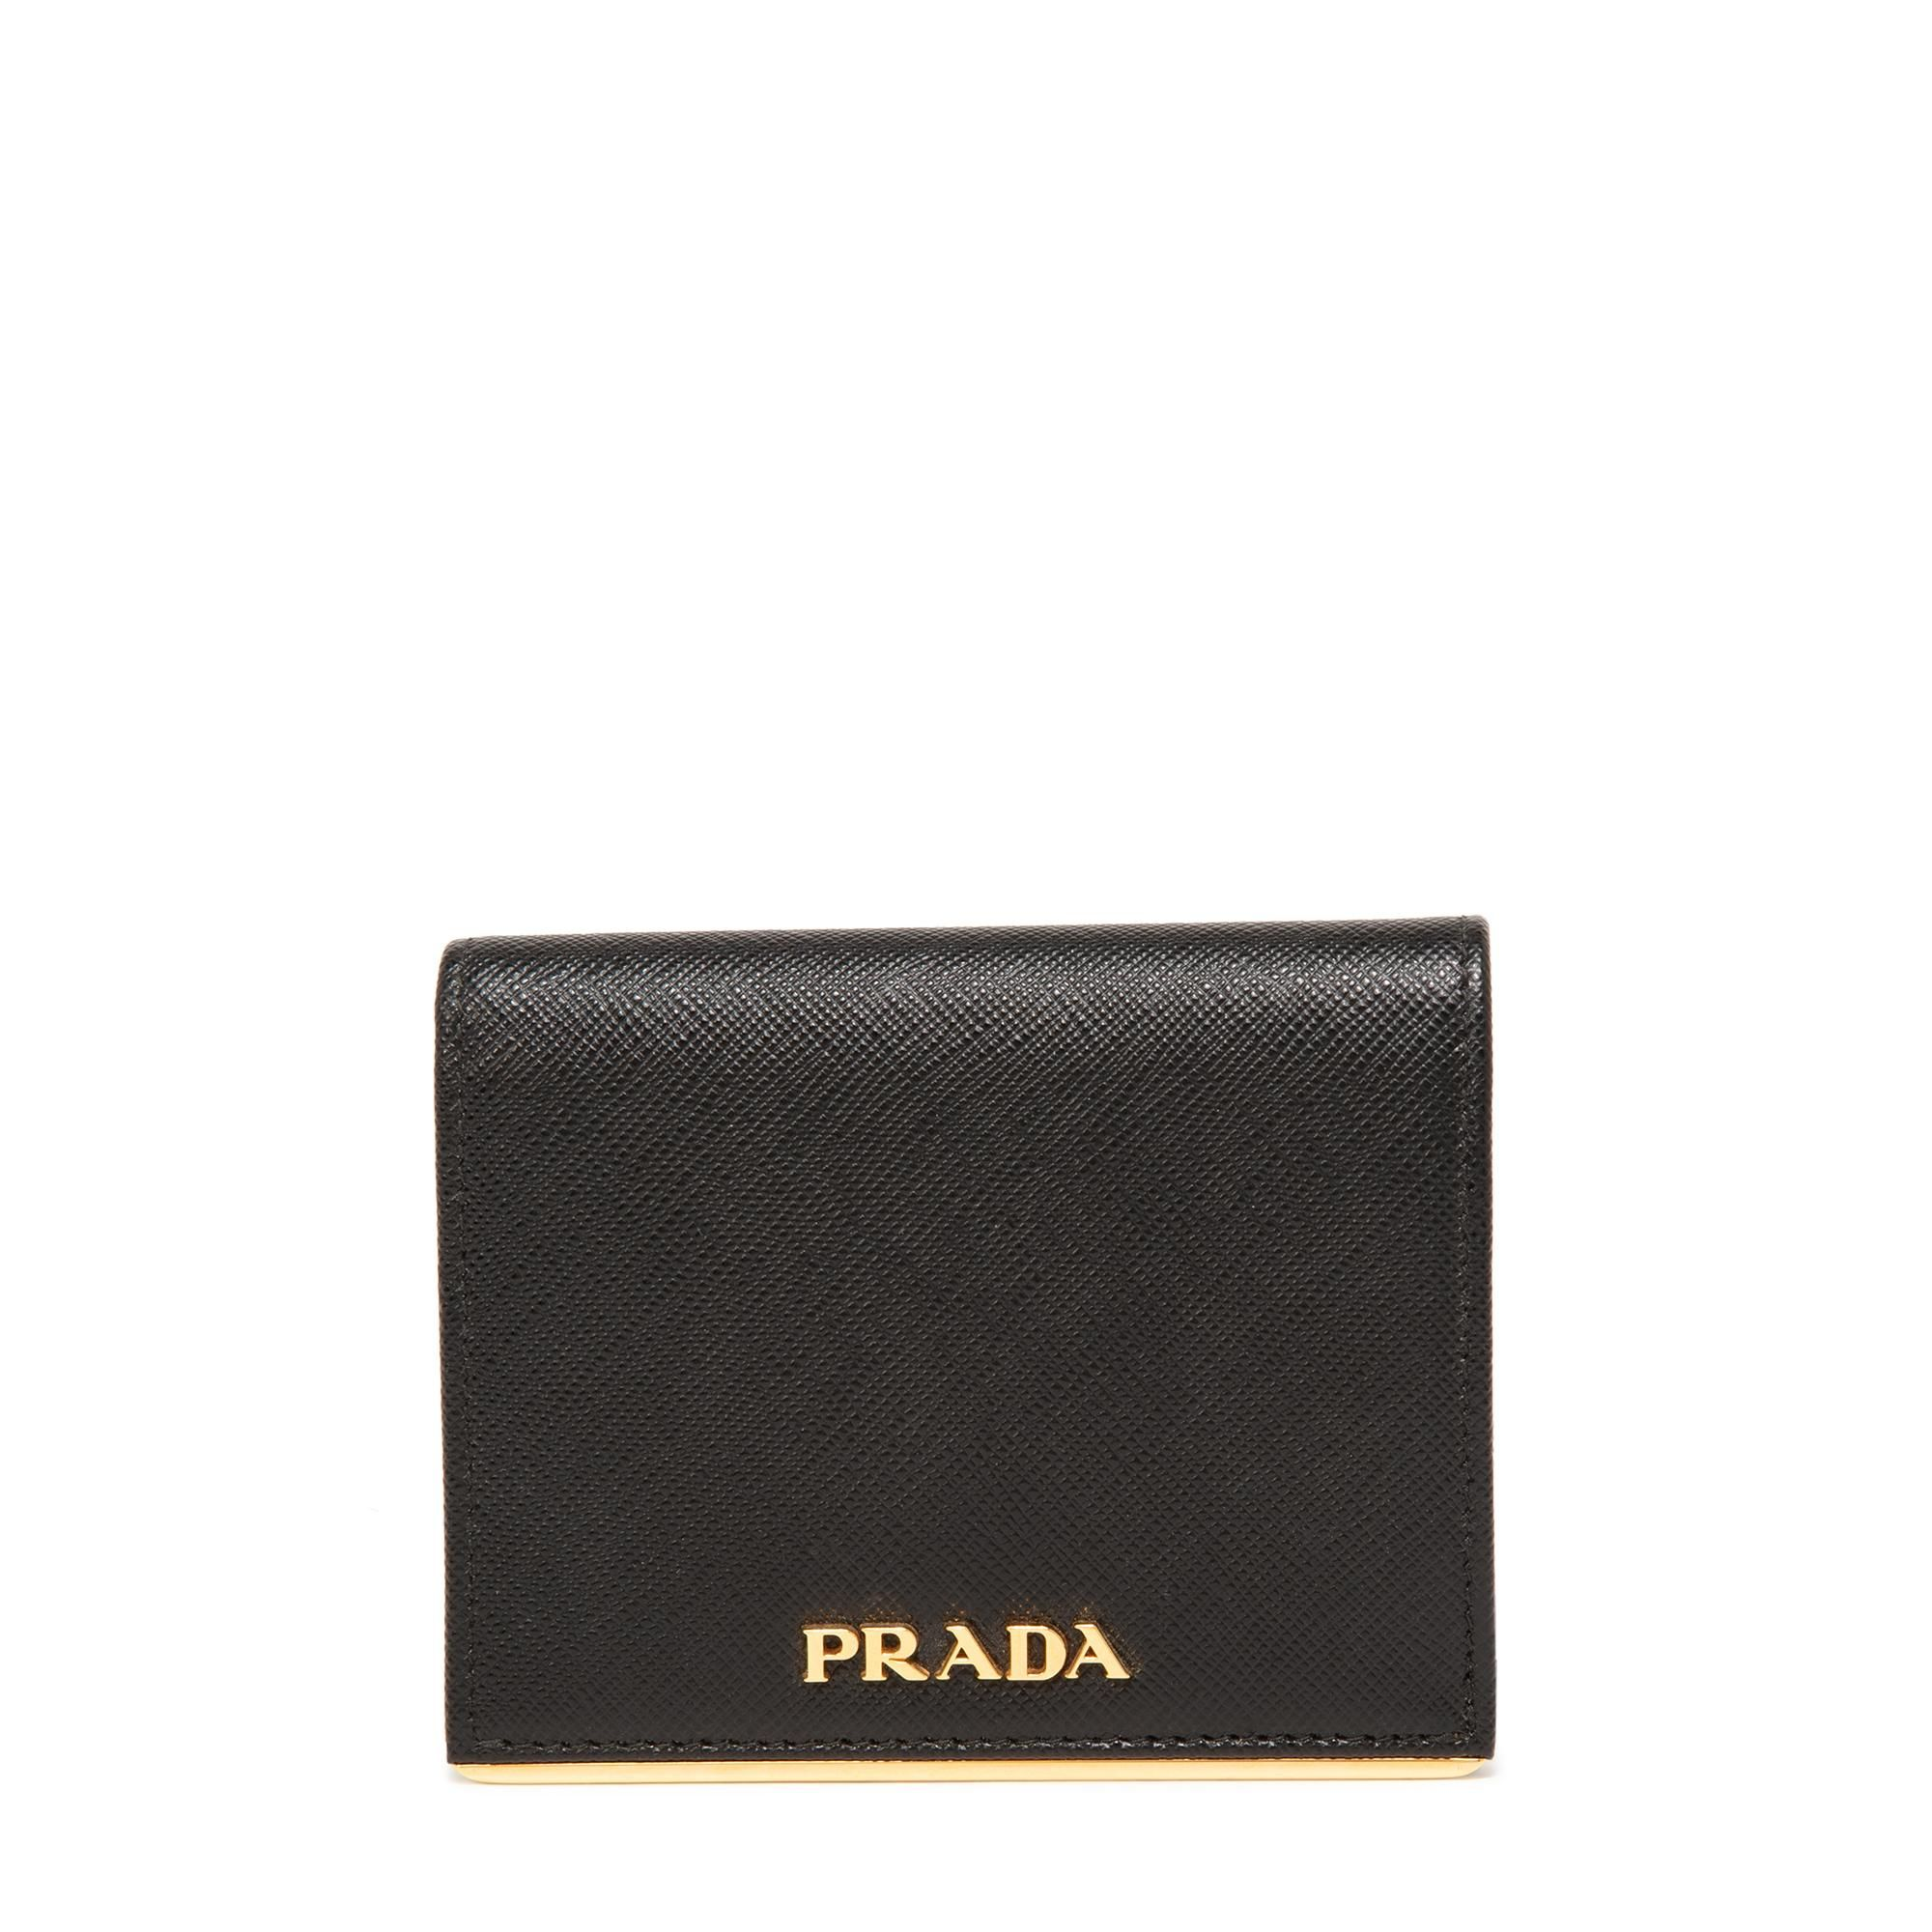 Saffiano leather small wallet